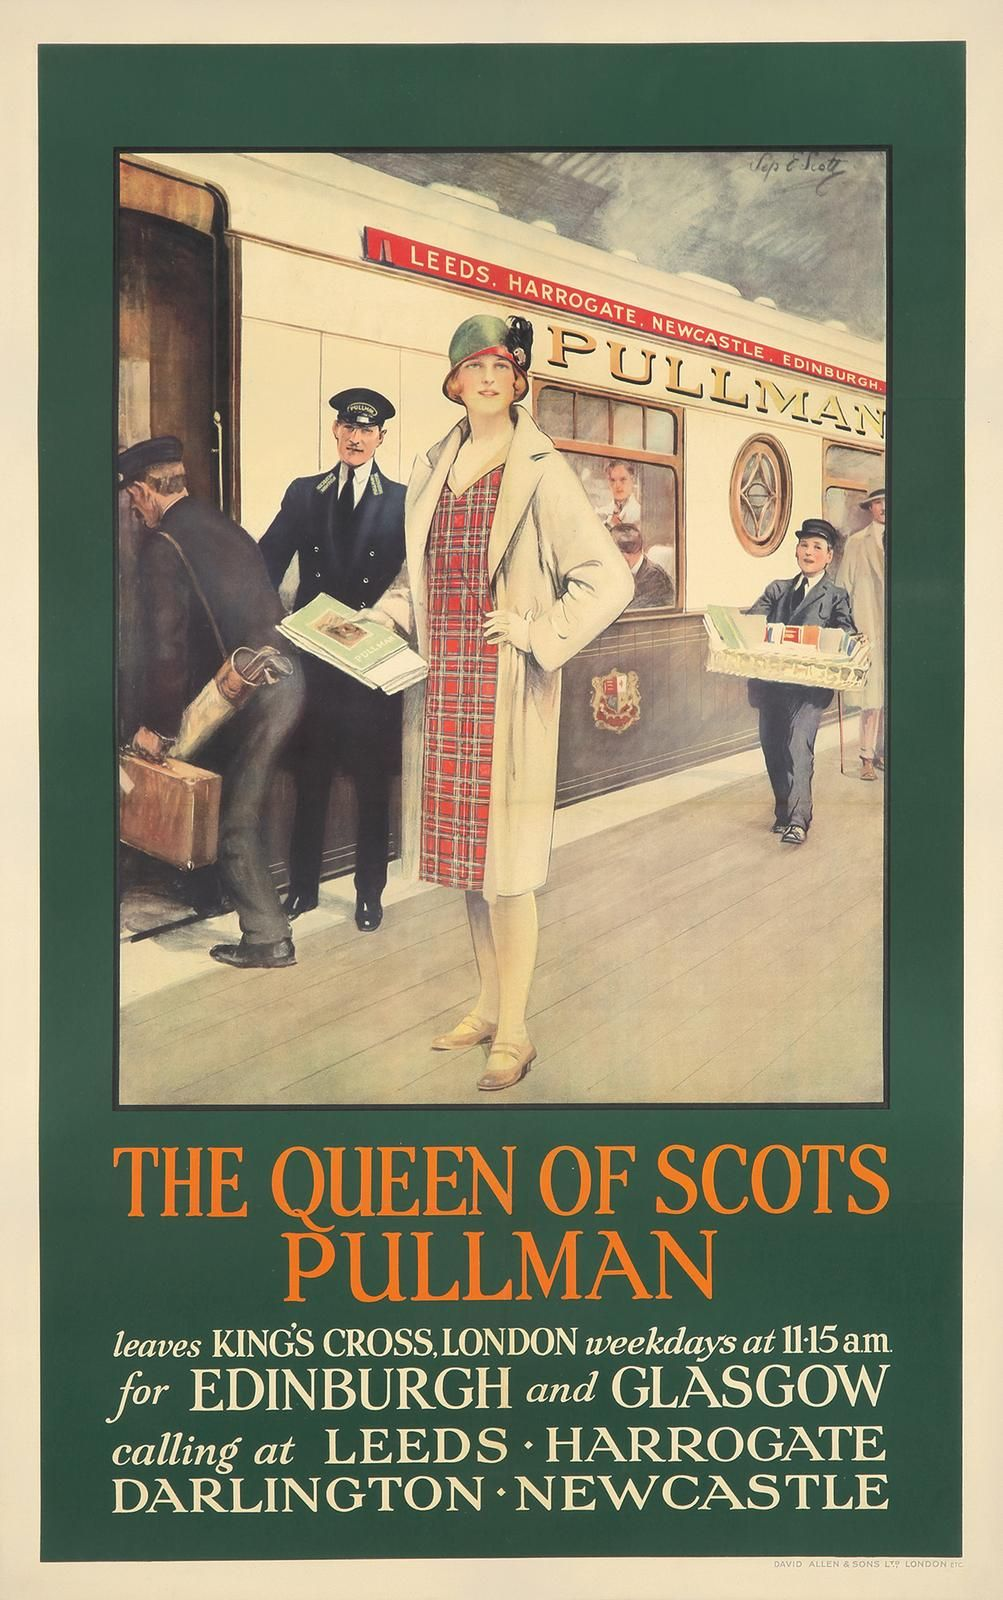 Pin By Toni Potter On Travel Train Posters Vintage Travel Posters Travel Posters